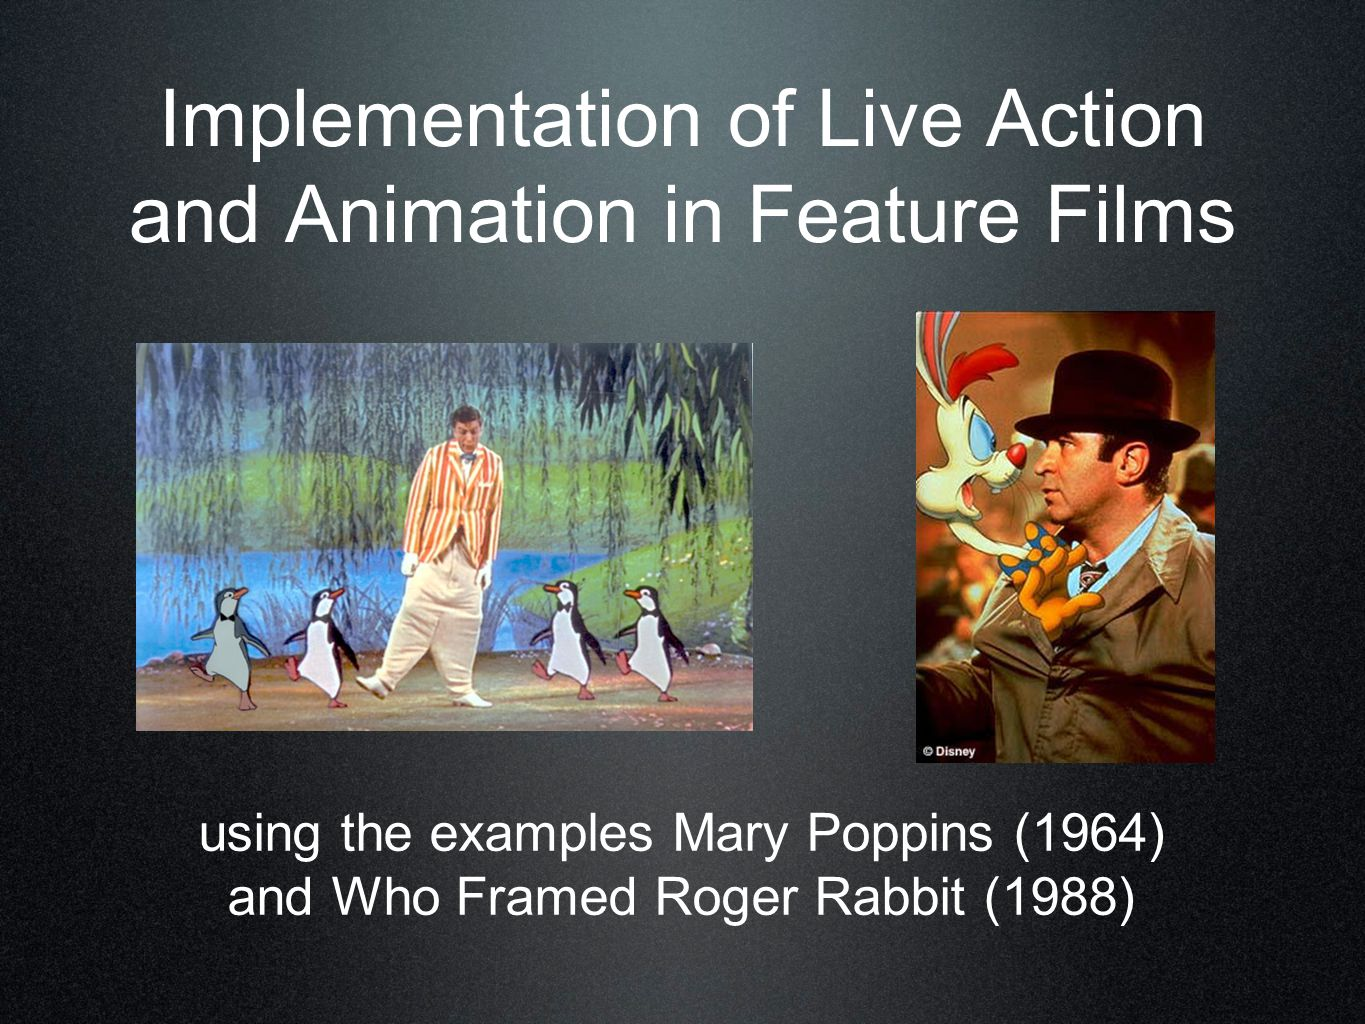 Implementation of Live Action and Animation in Feature Films